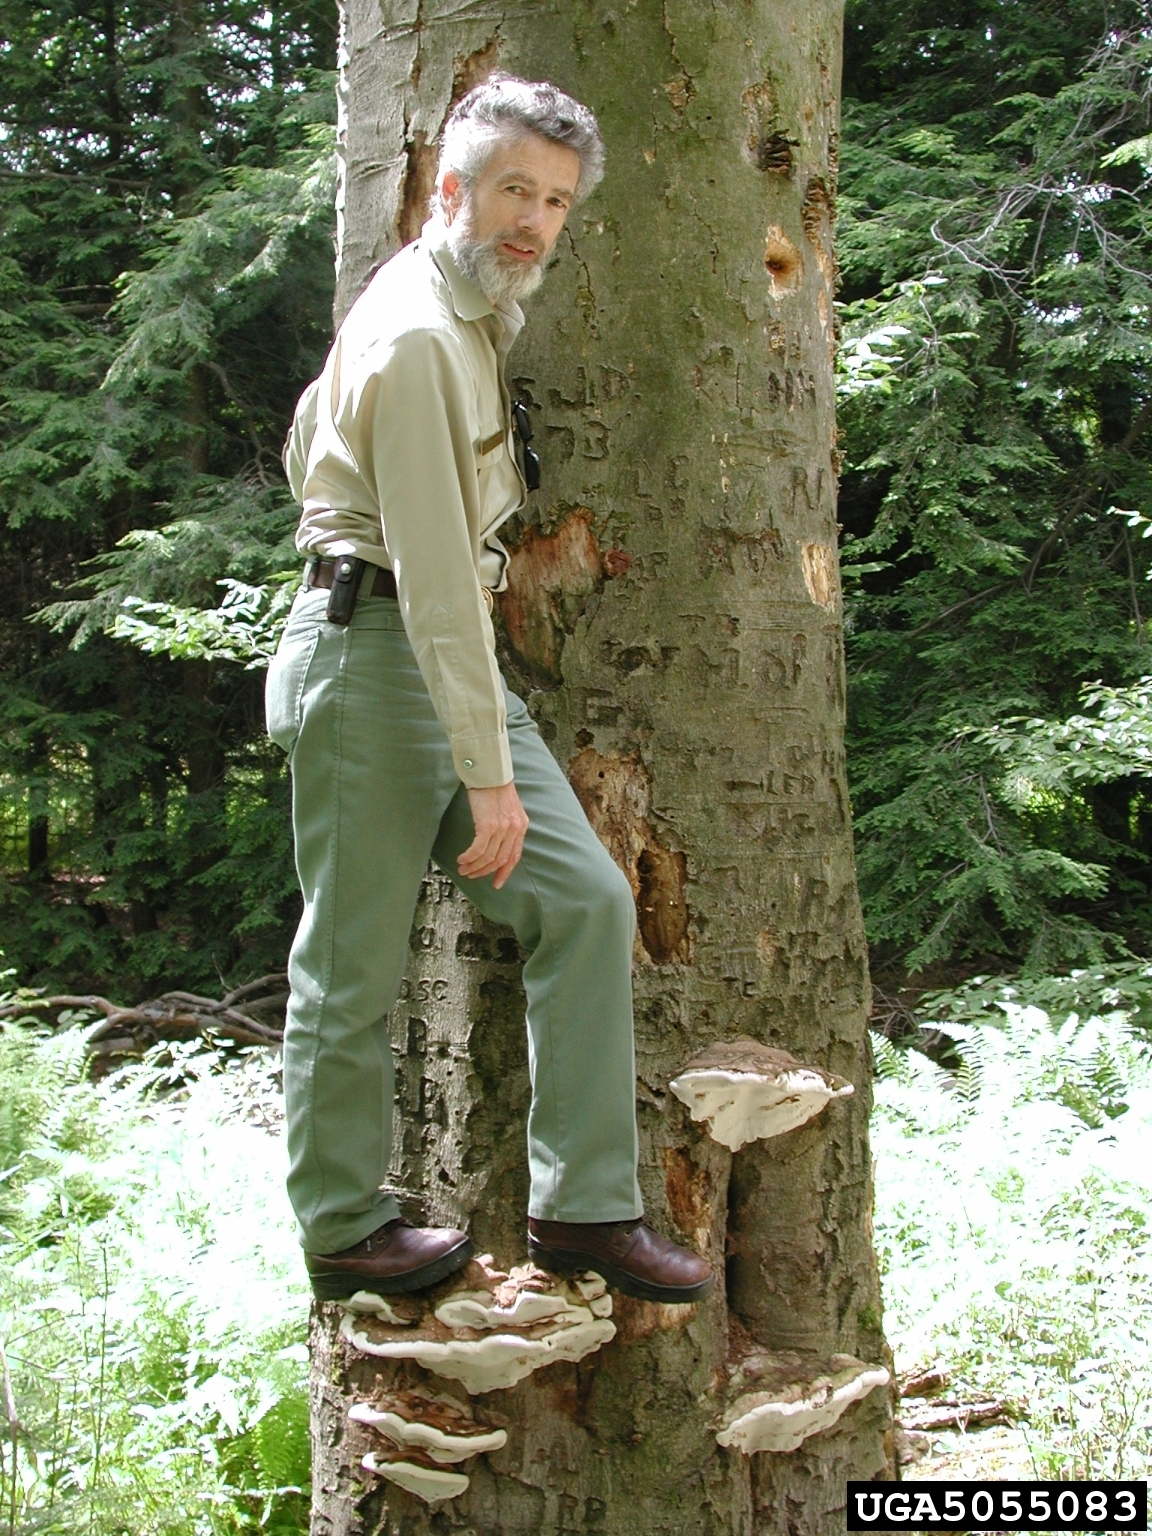 A man standing on an actual mushroom shelf growing out of a tree.